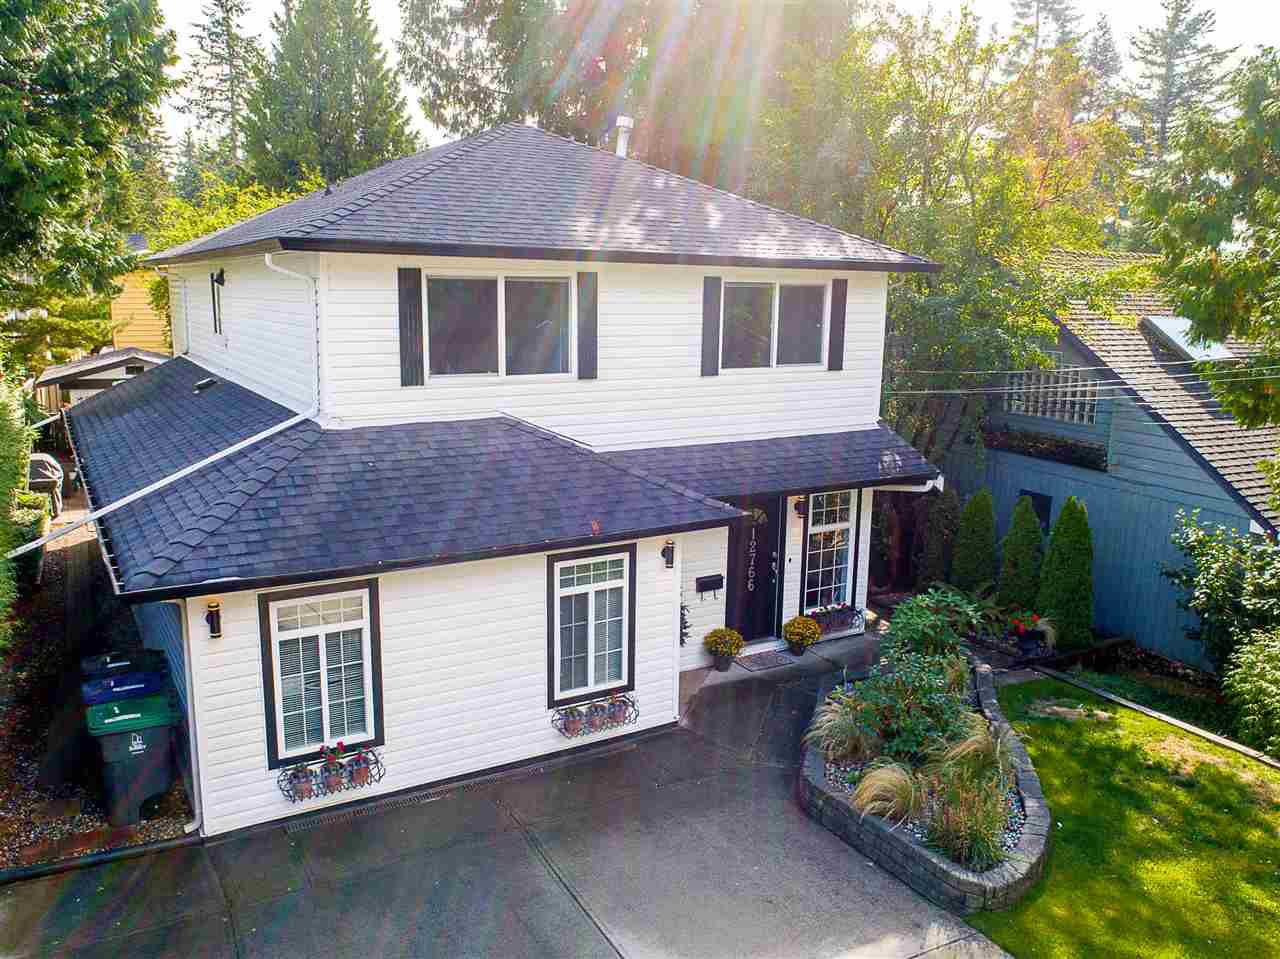 Main Photo: 12766 15A Avenue in Surrey: Crescent Bch Ocean Pk. House for sale (South Surrey White Rock)  : MLS®# R2206945